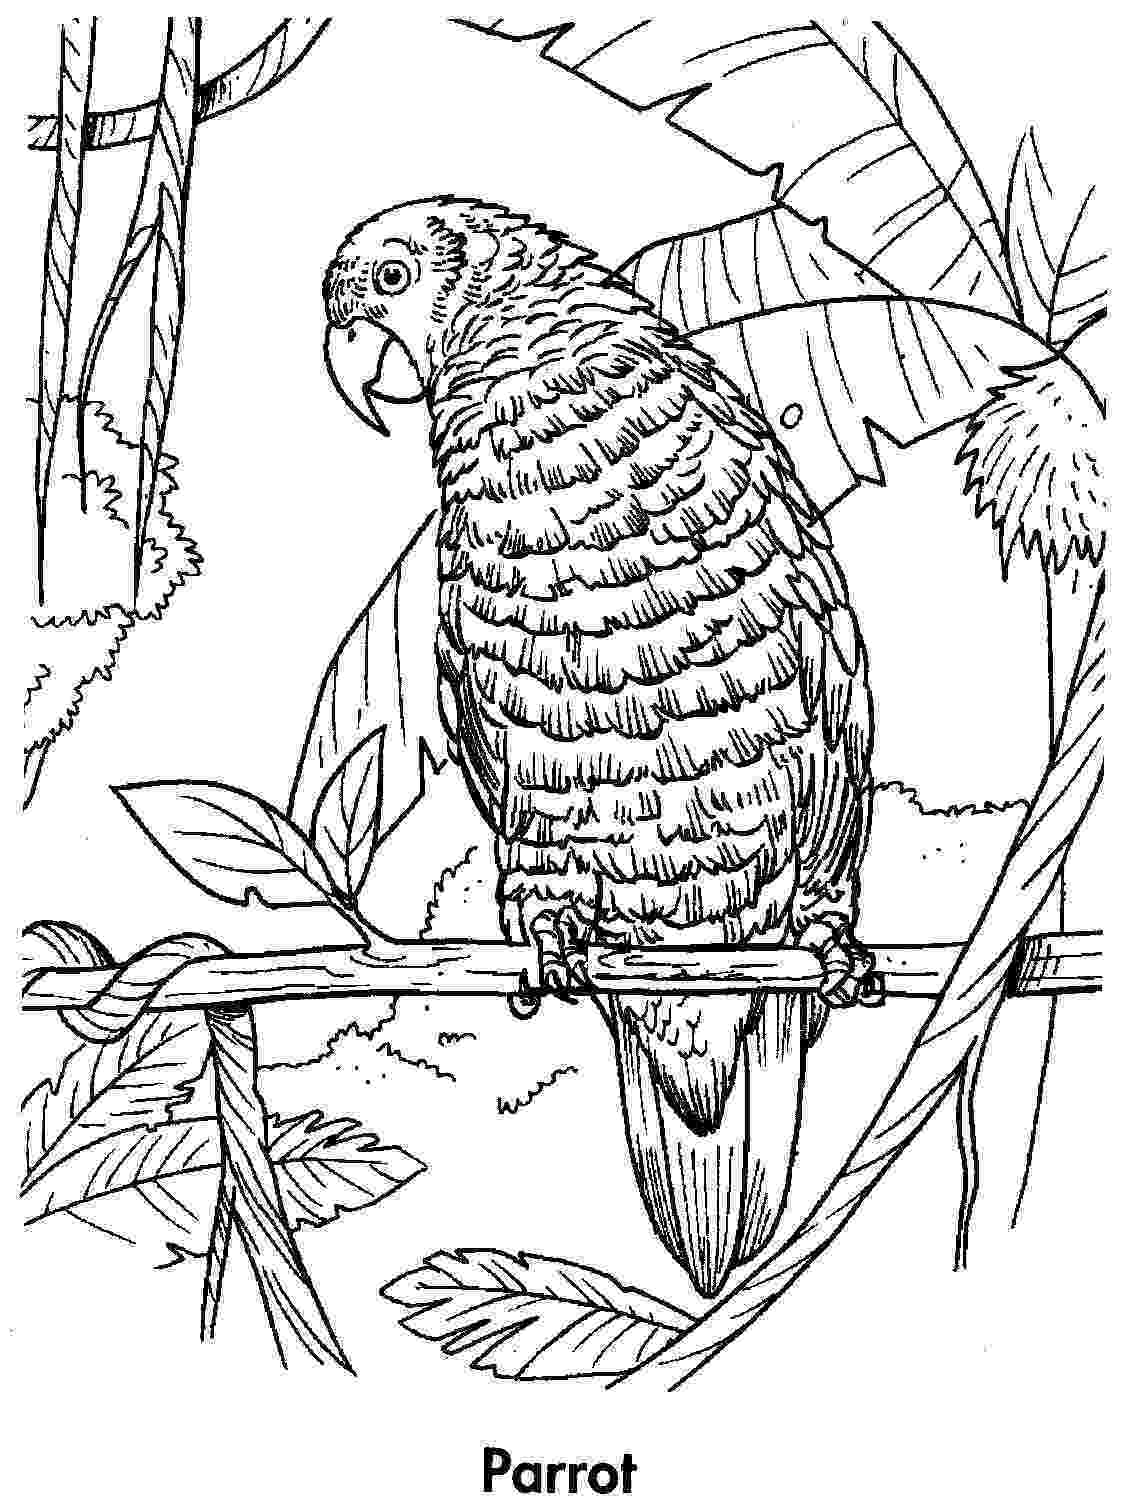 parrot printable free printable parrot coloring pages for kids parrot printable 1 1